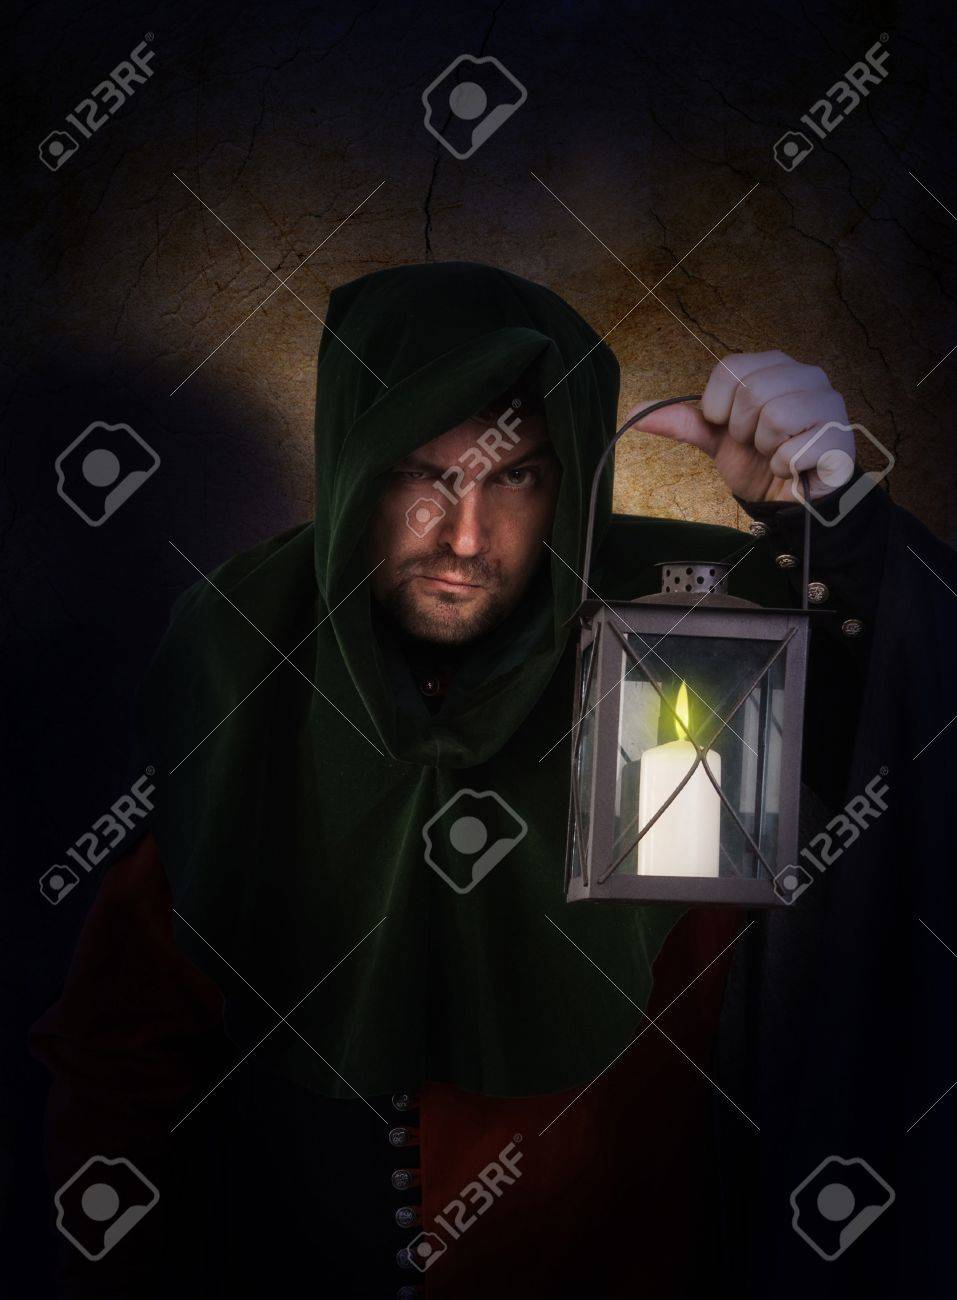 Night watchman in a medieval suit and hood with a lantern Stock Photo - 9058250